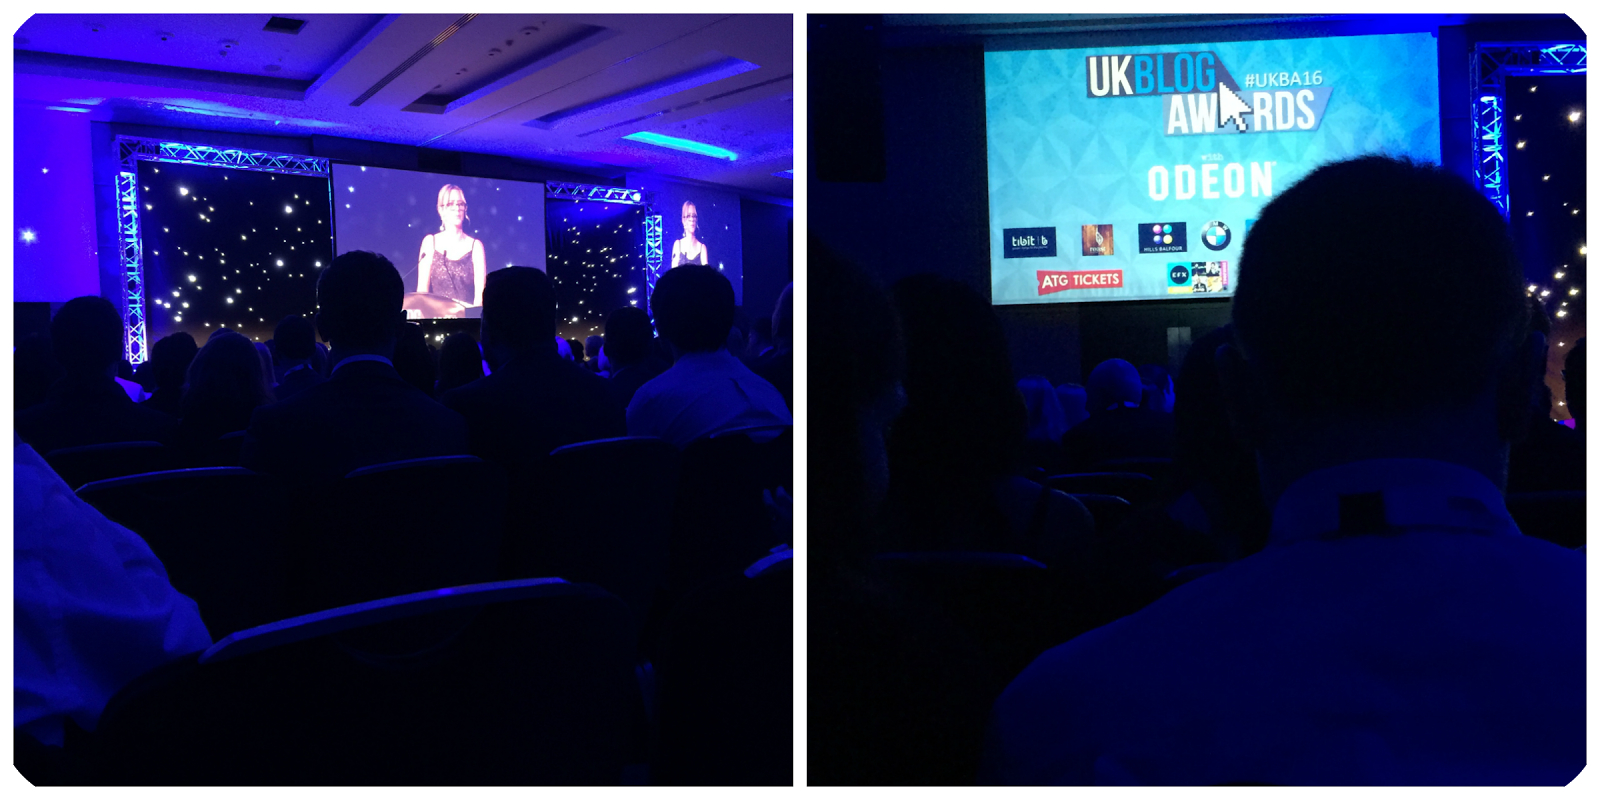 uk blog awards 2016 event